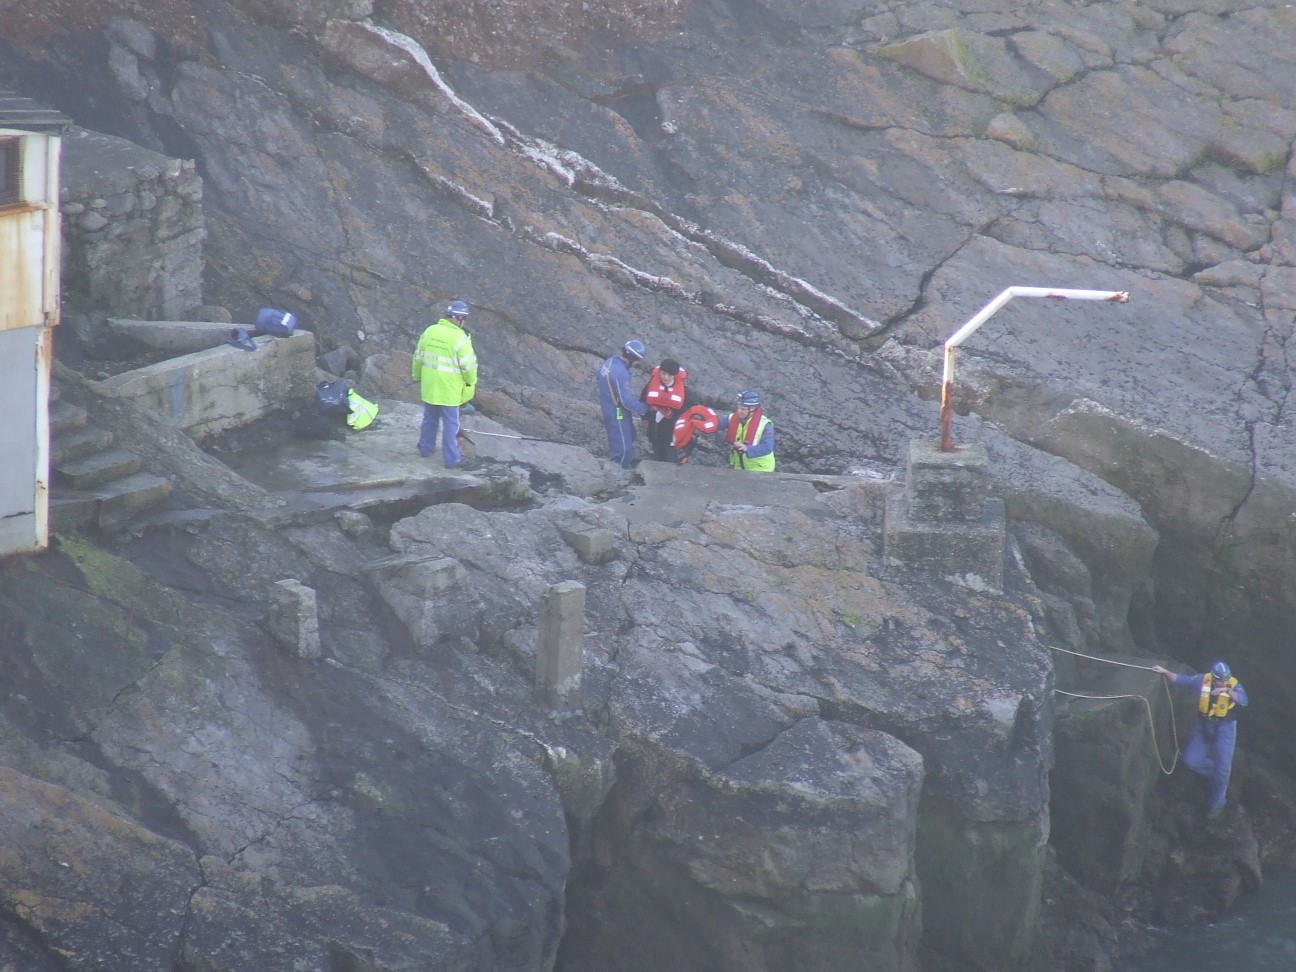 Coastguard_Rescue_Team_assisting_the_men_up_the_cliff